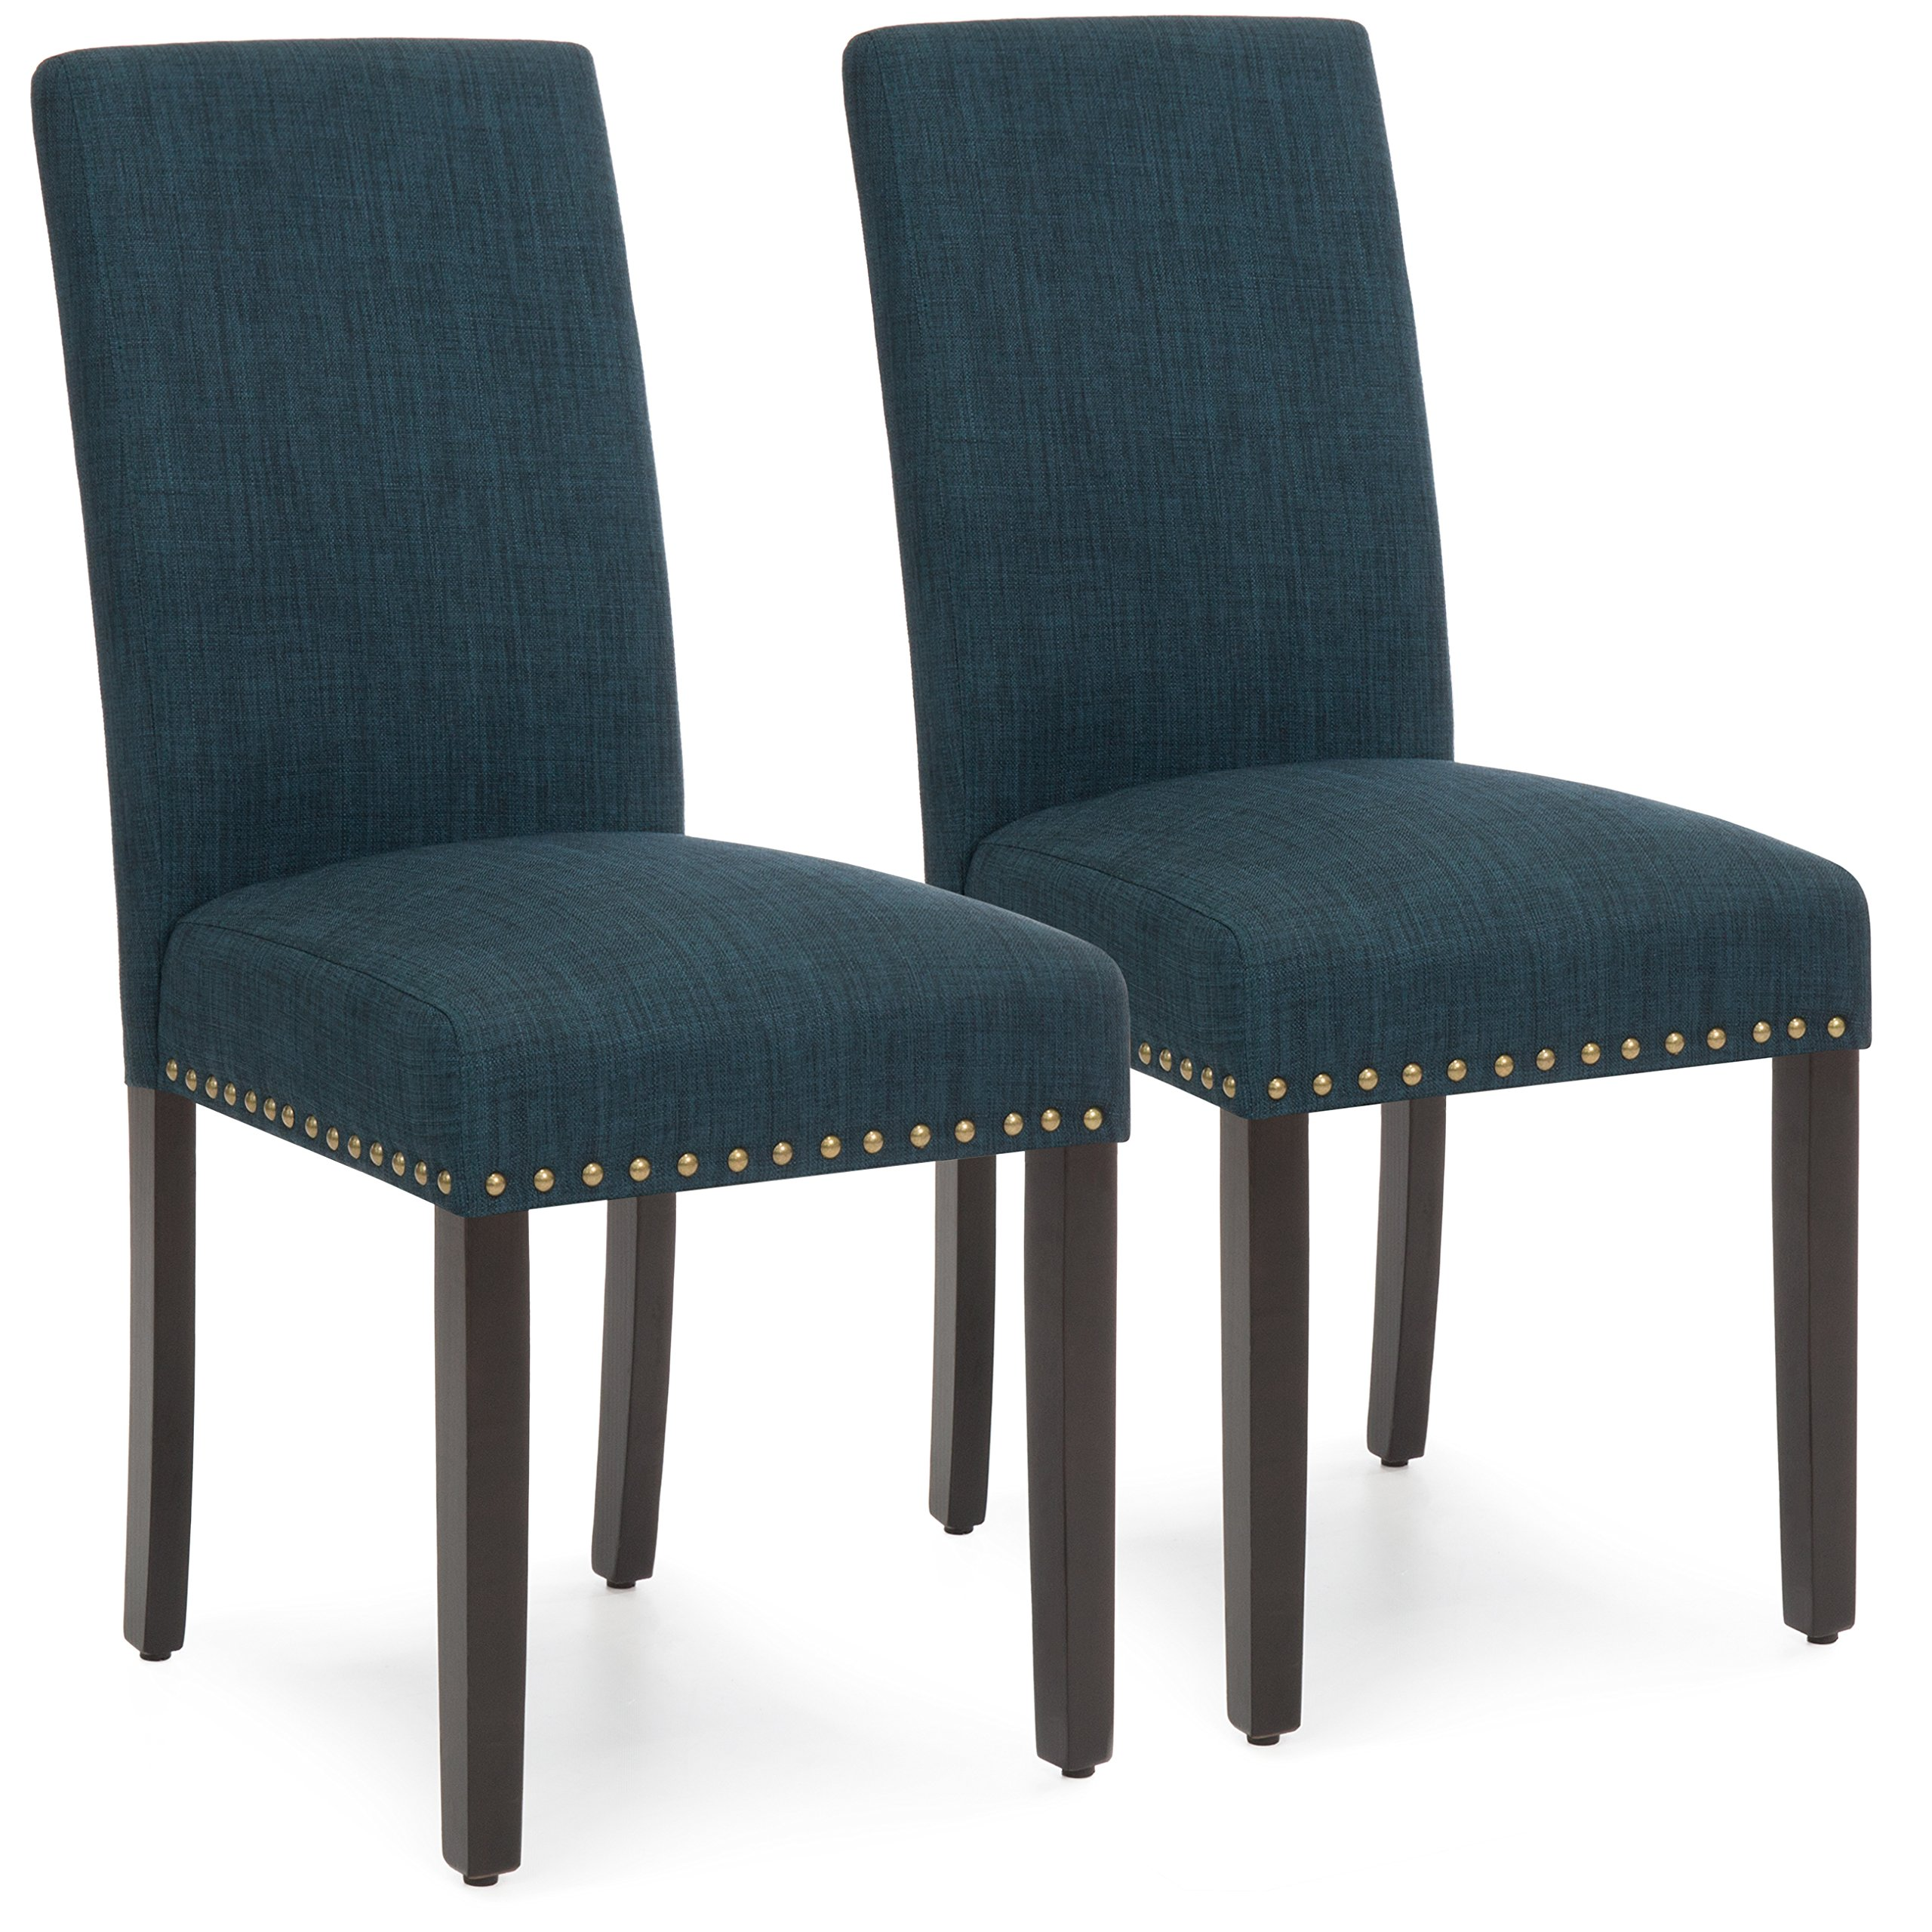 Best Choice Products Set of 2 Modern Contemporary Nail Head Upholstered Fabric Parsons Dining Chairs (Graphite Blue)